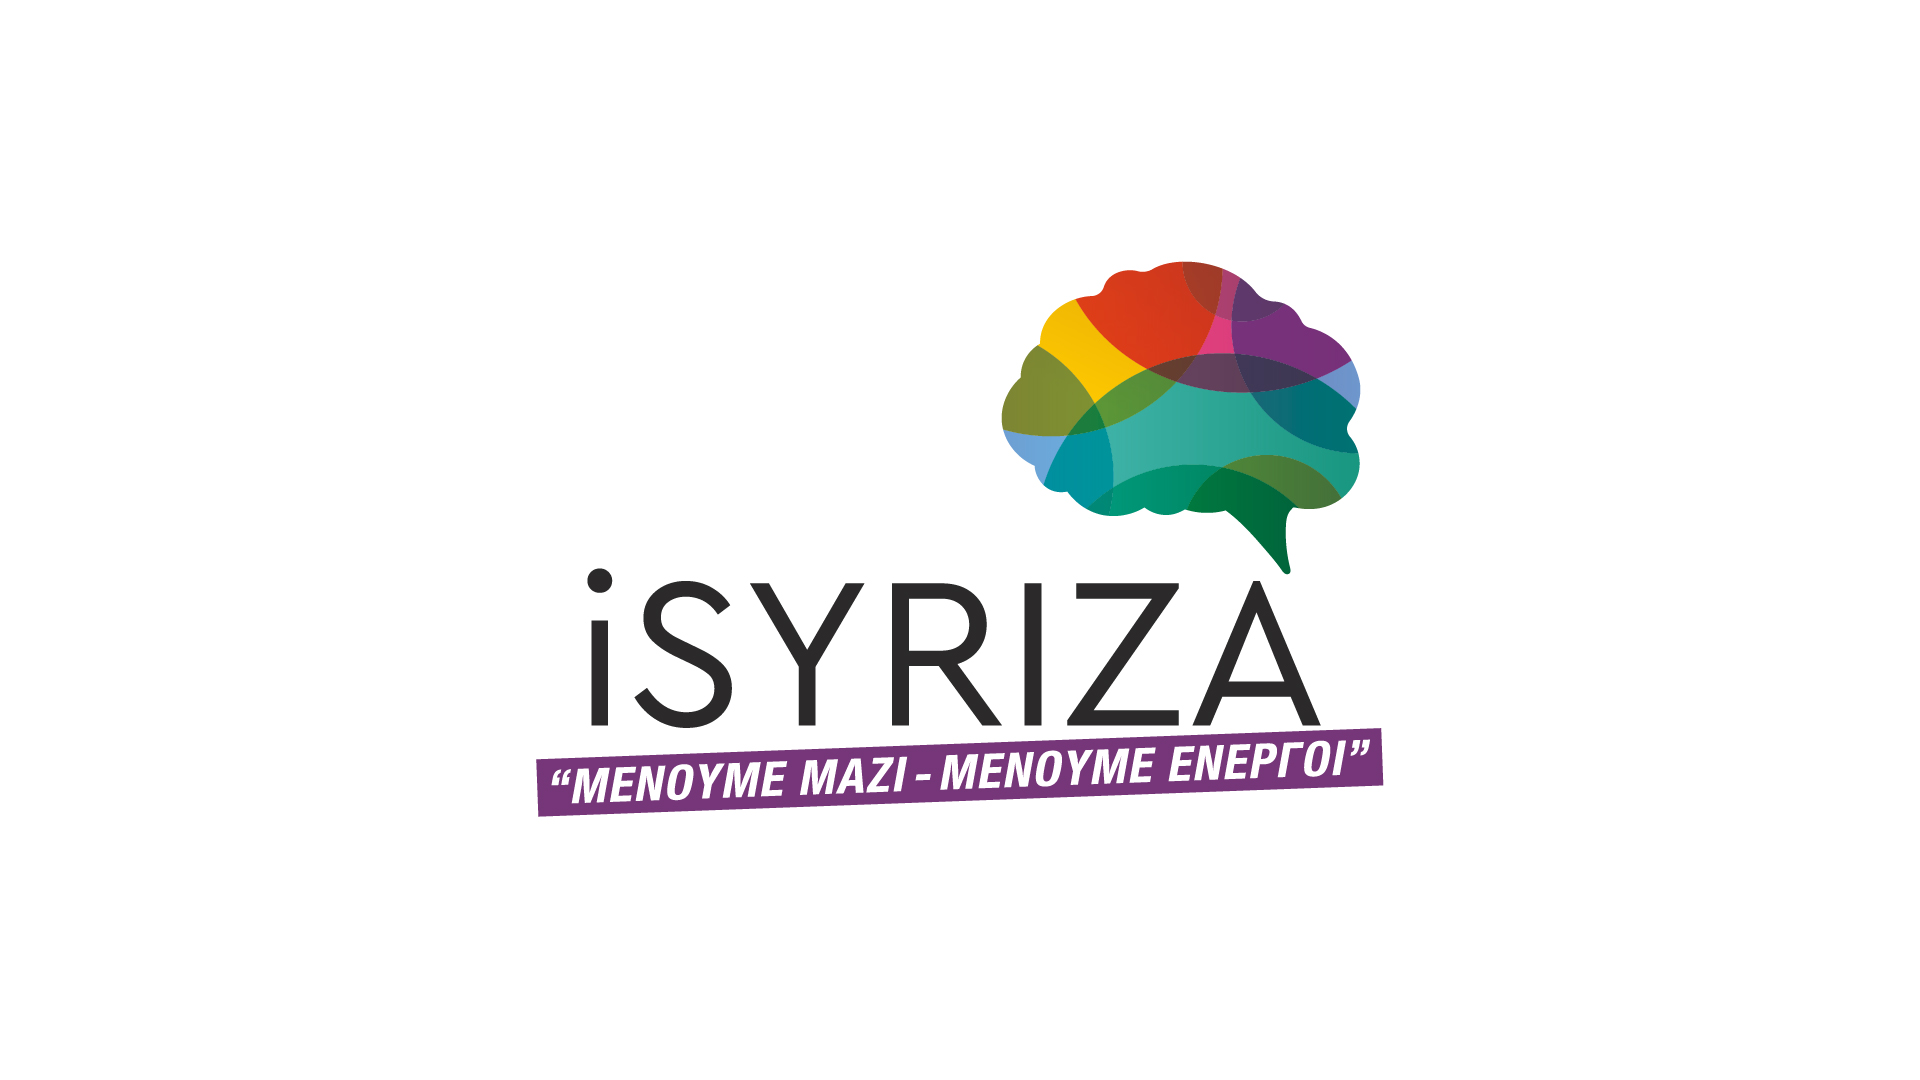 Greece: SYRIZA platforms aim at boosting civic participation and social action